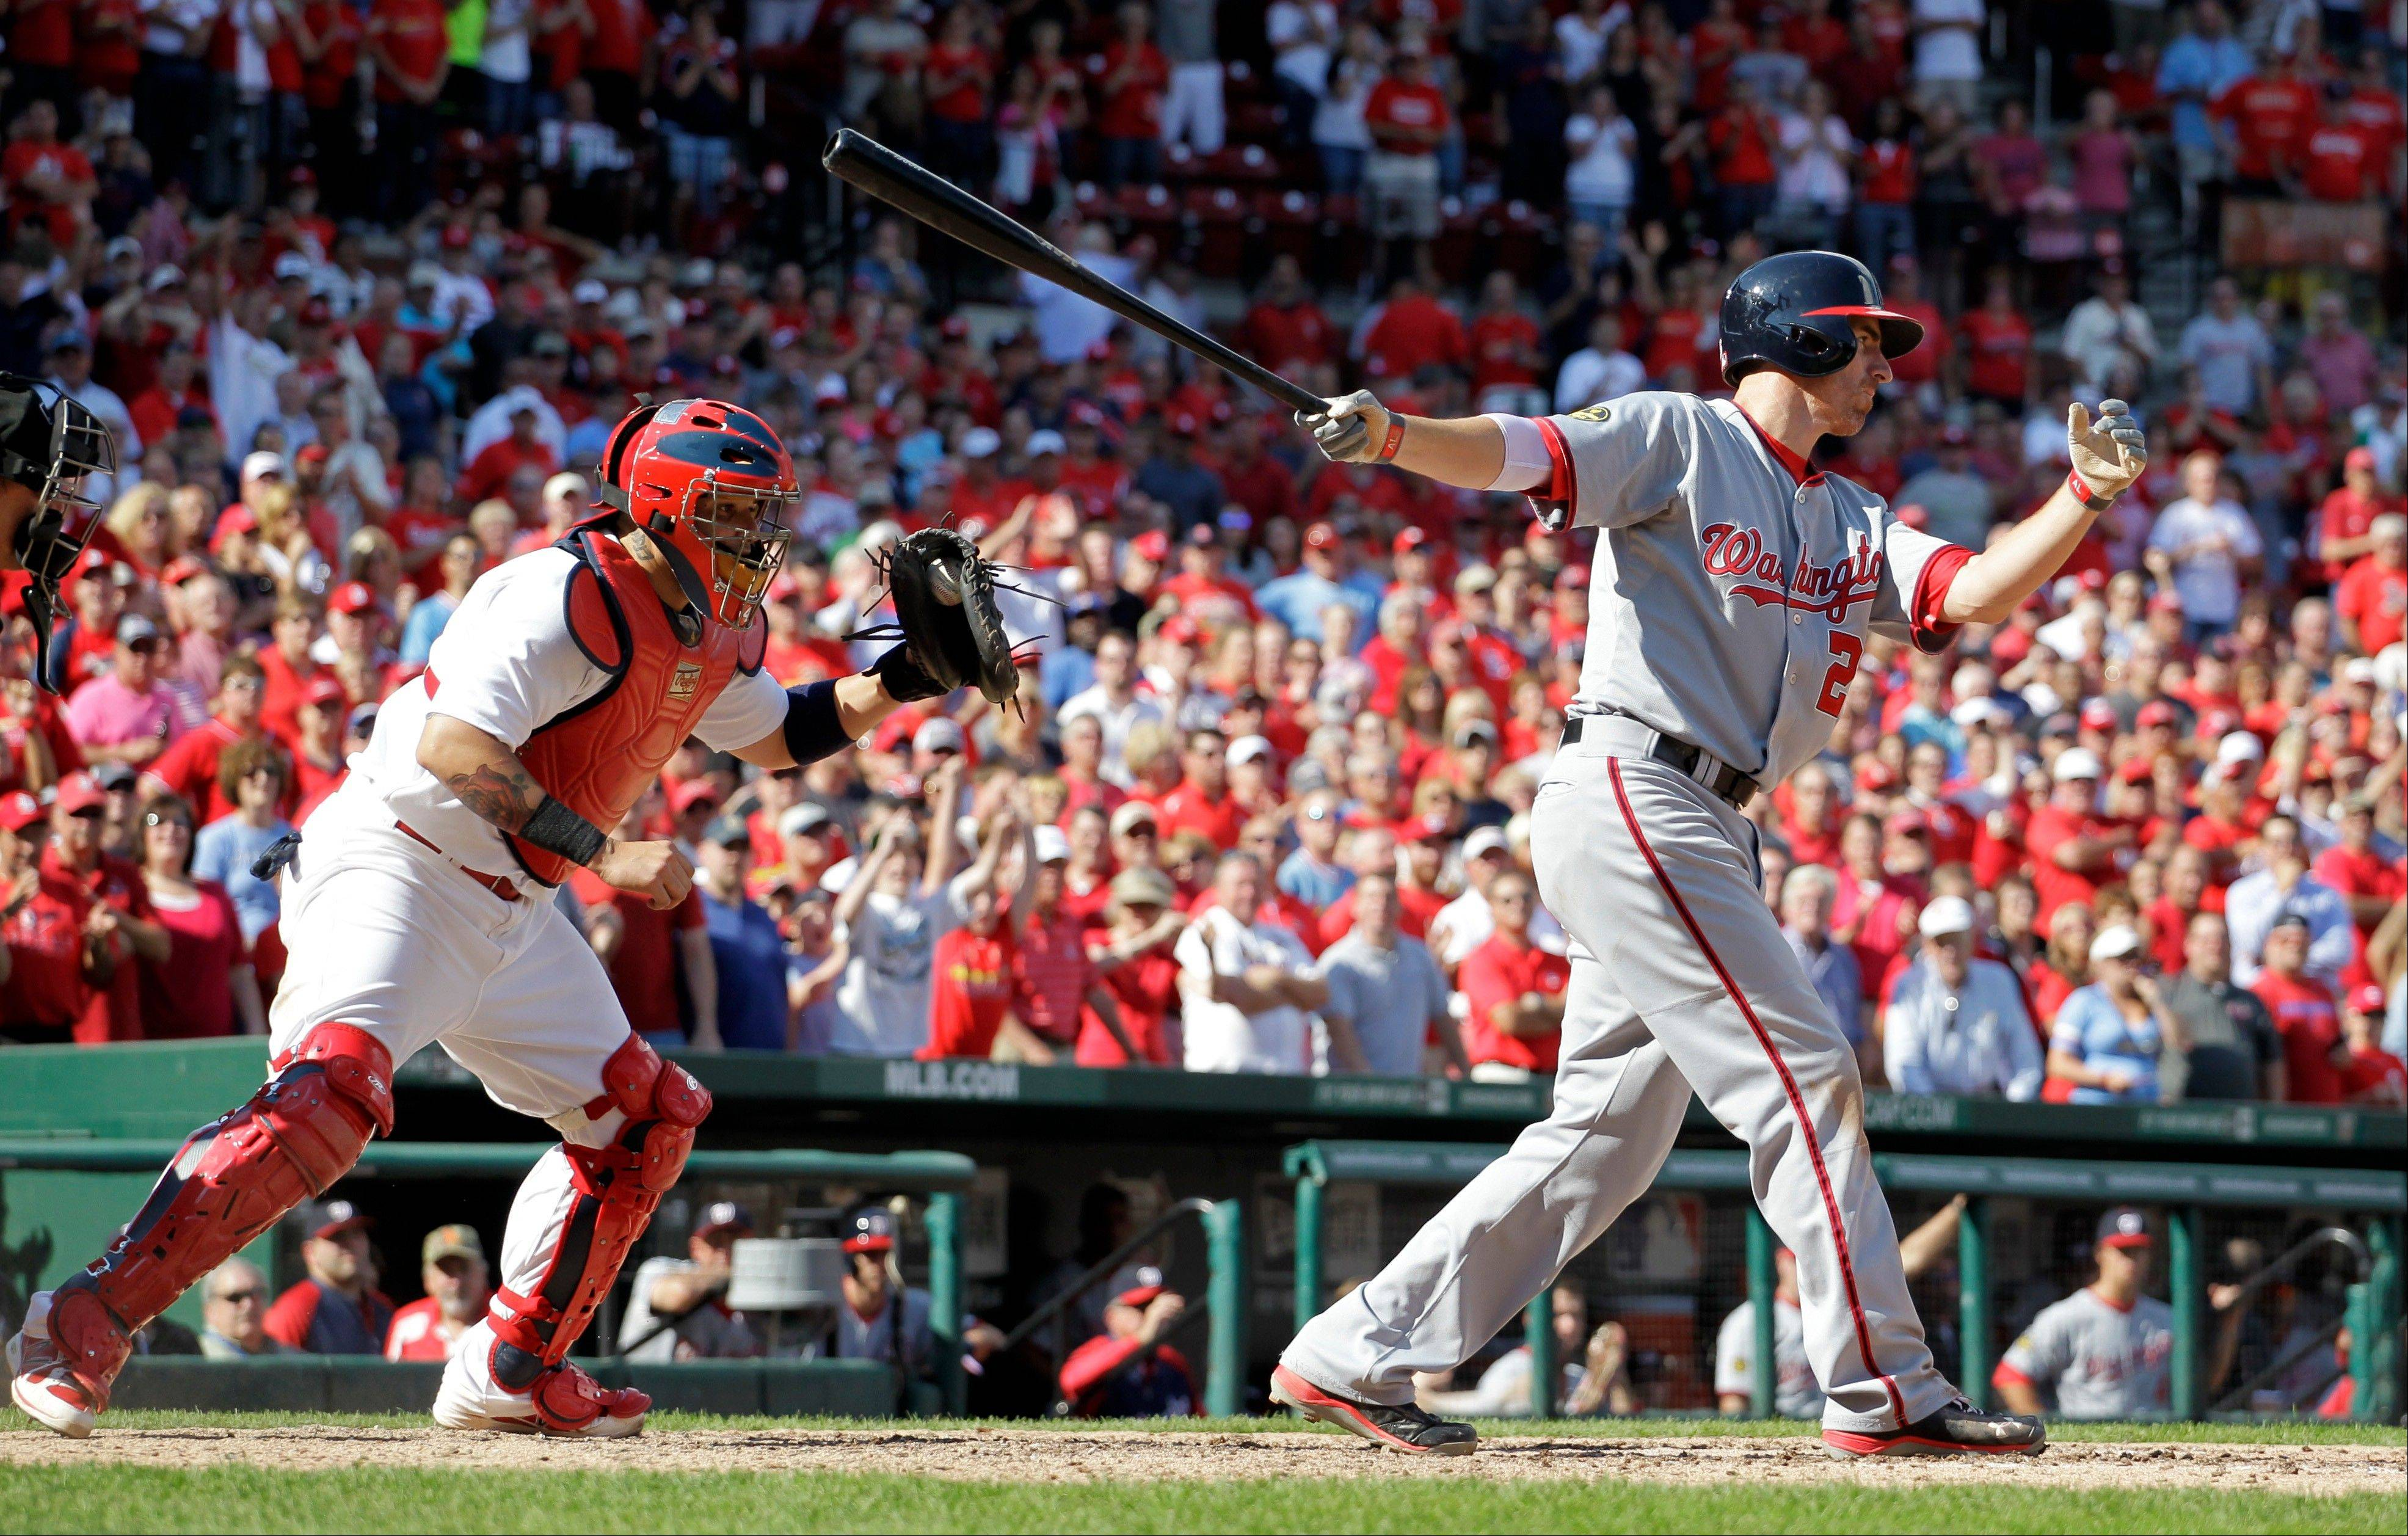 St. Louis Cardinals catcher Yadier Molina, left, celebrates as Washington Nationals' Adam LaRoche strikes out swinging for the final out of a baseball game Wednesday in St. Louis. The Cardinals won 4-1.